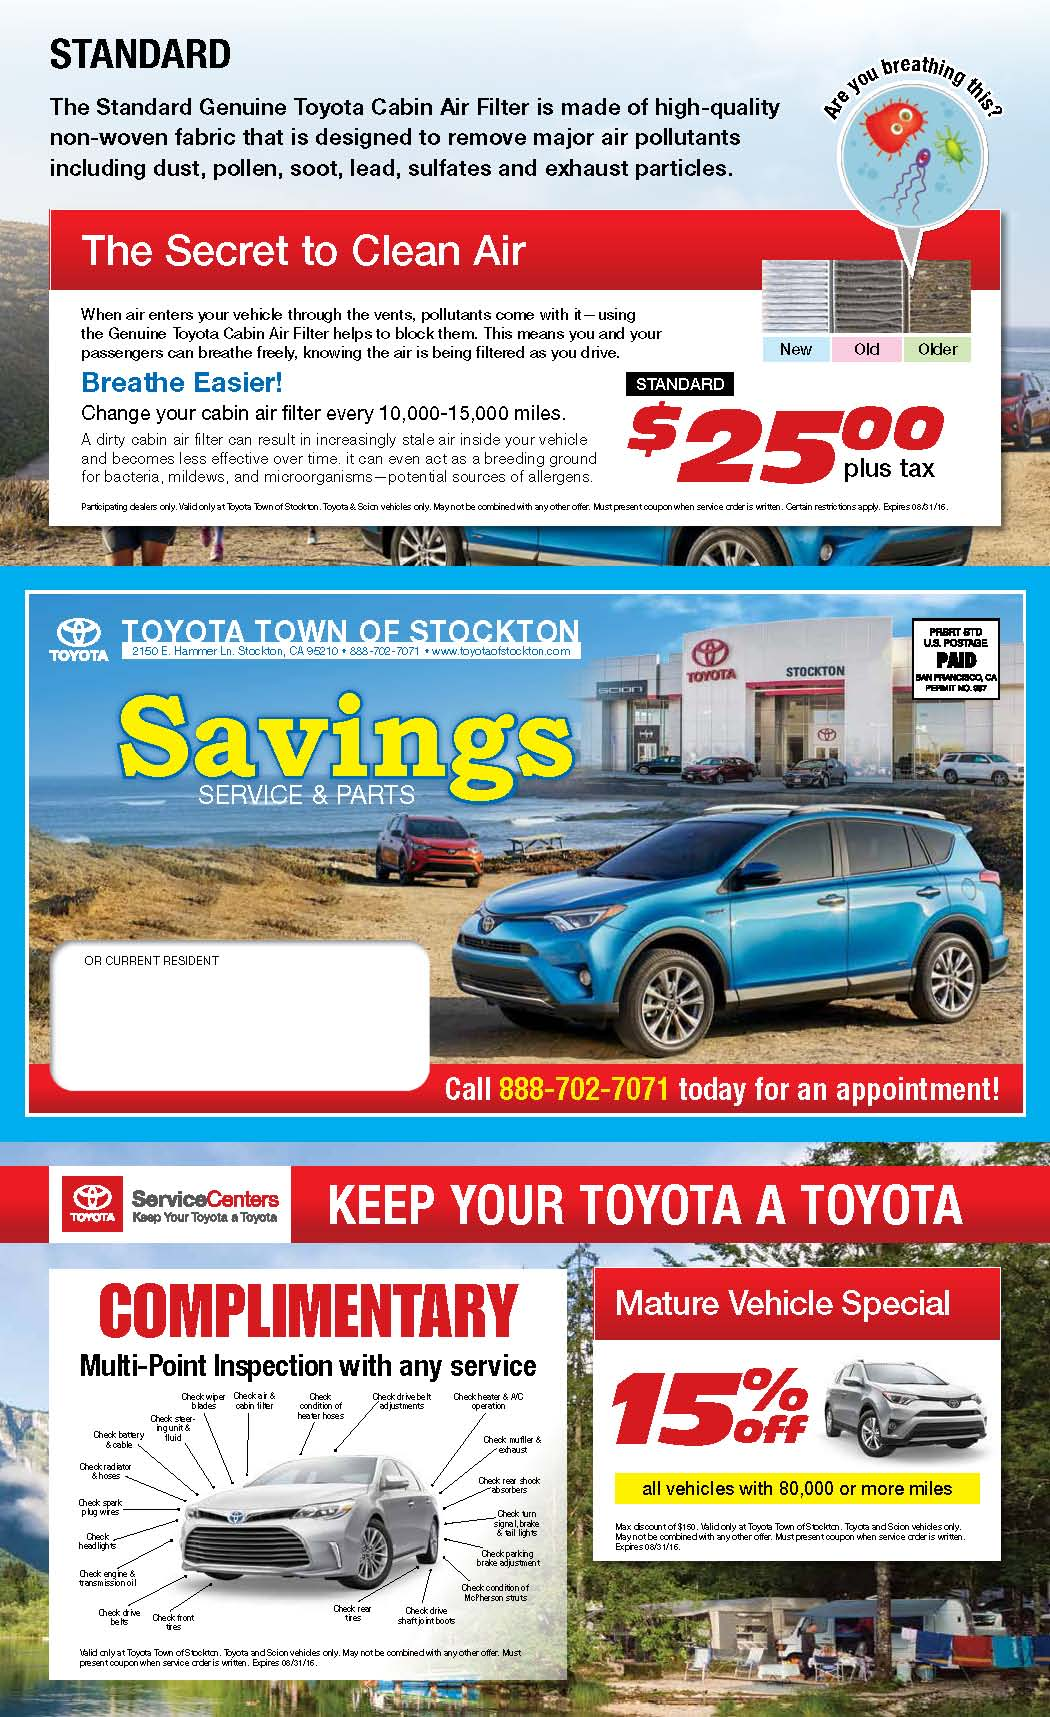 Toyota Town of Stockton Service and Parts Specials